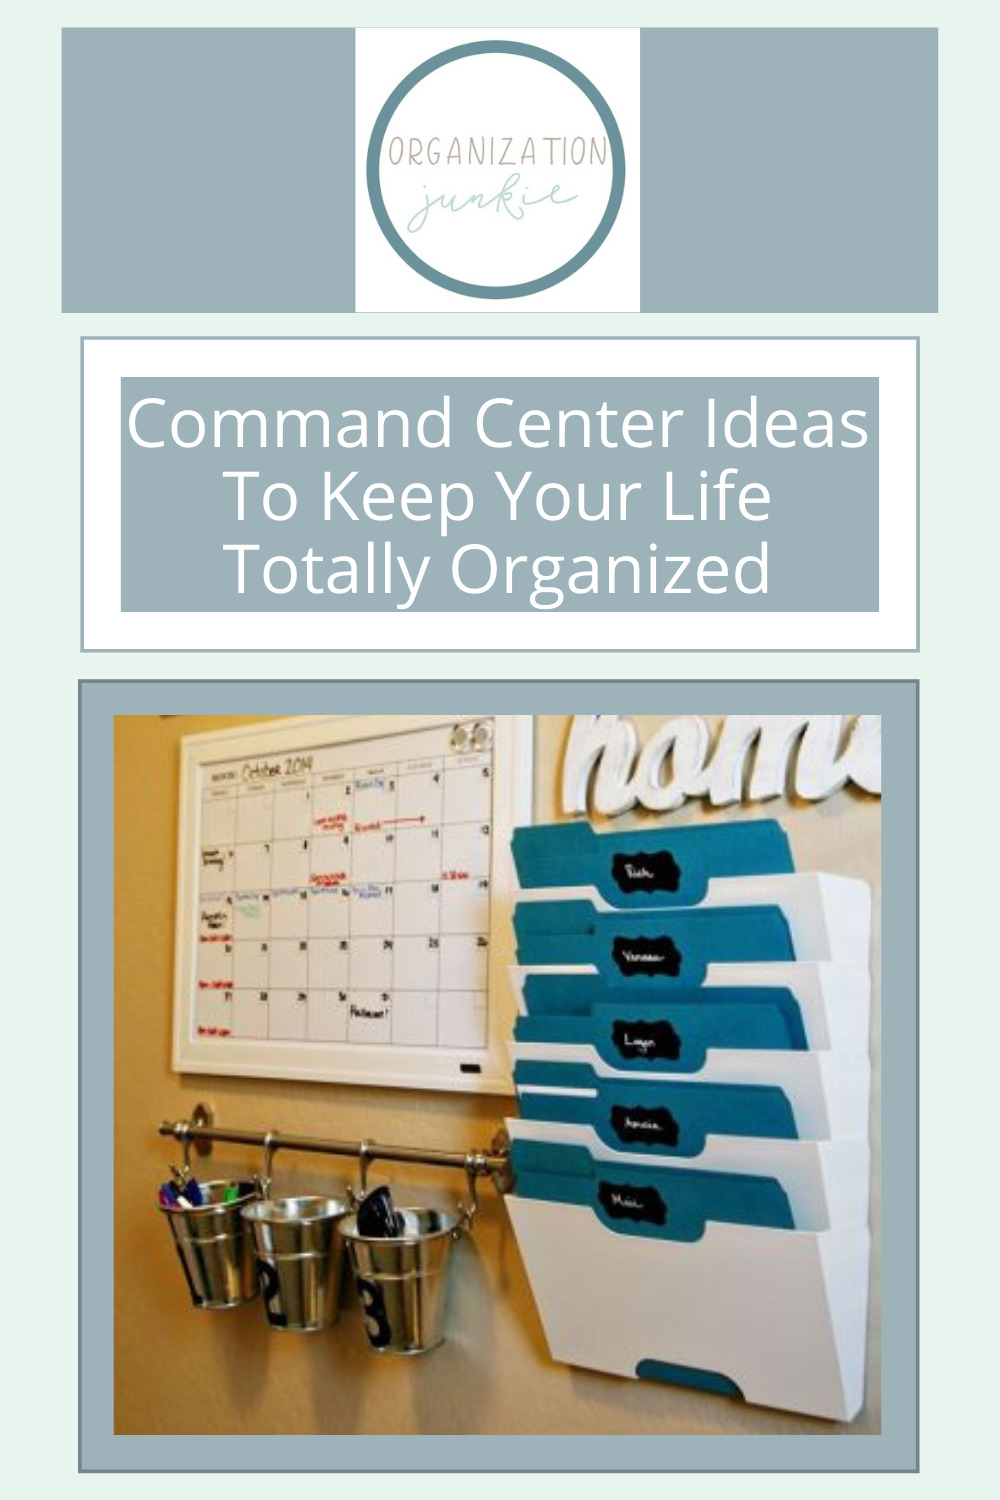 Organizationjunkie.com has the best solutions for organizing your home and life. Command centers have the best of both worlds! Check out these awesome and efficient command centers now.